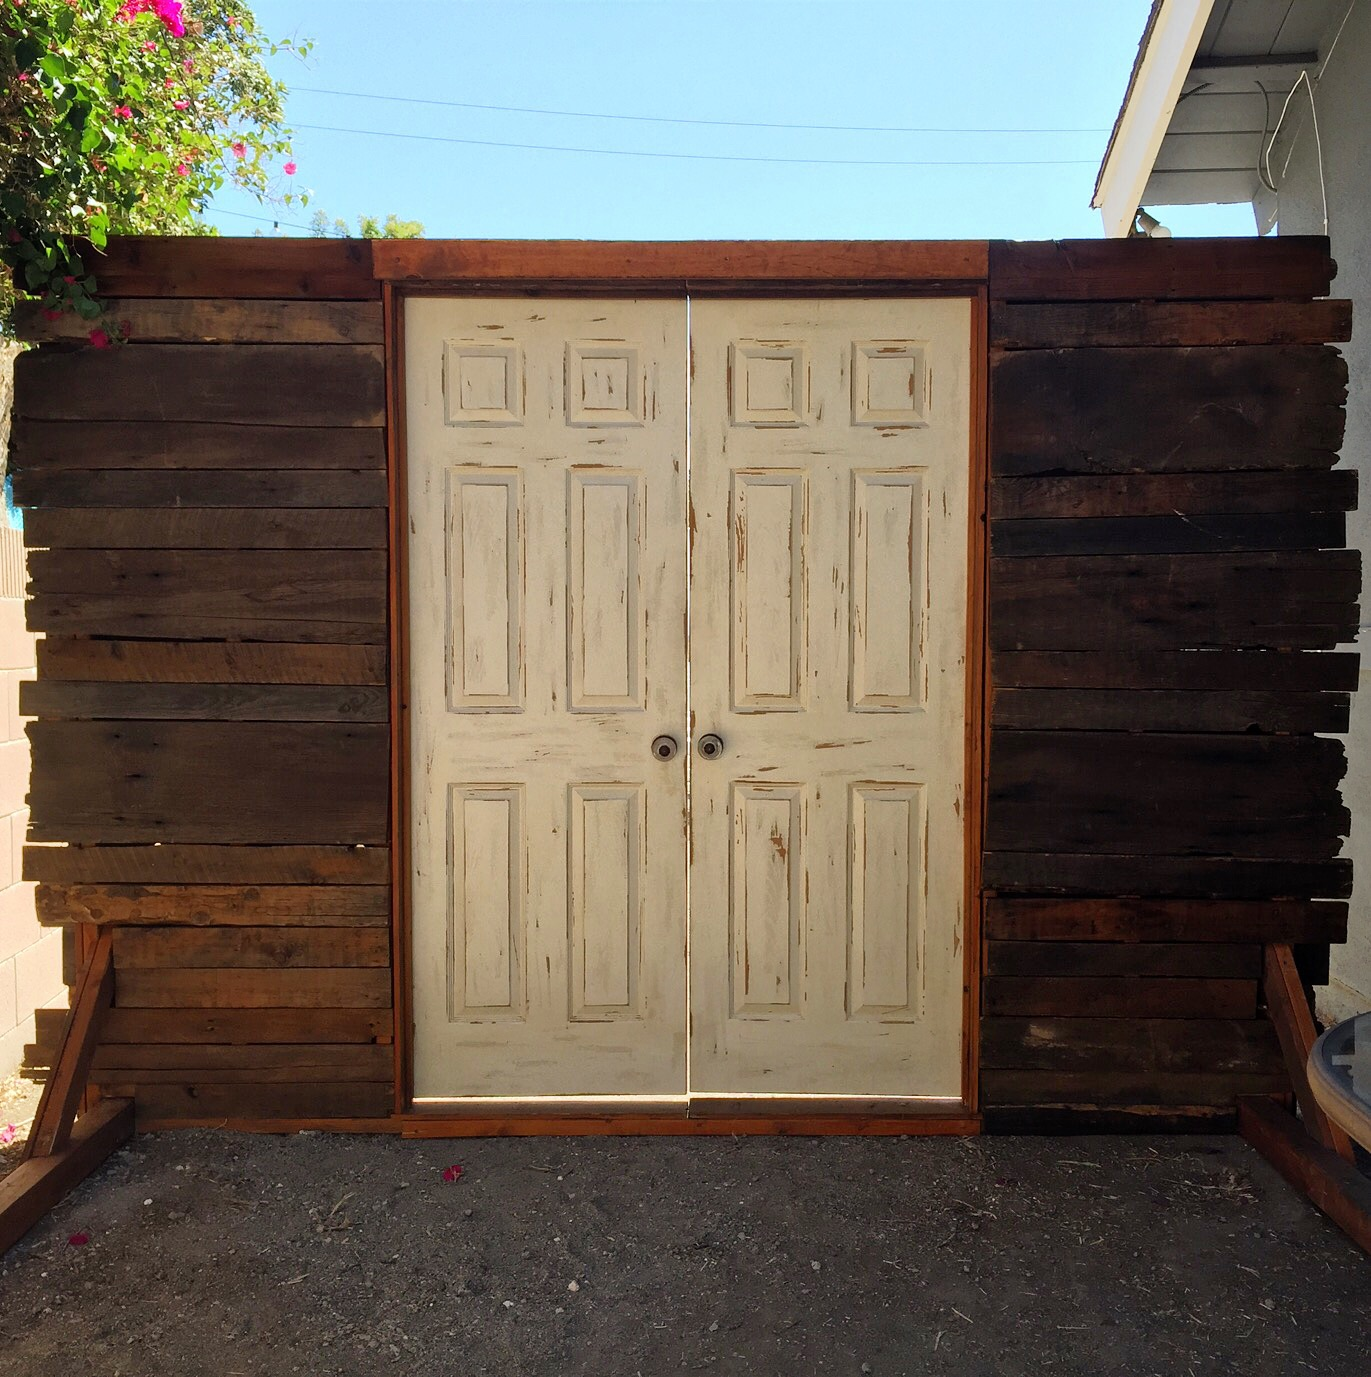 Ceremony Opening Doors - 10ft x 8ft - (1)